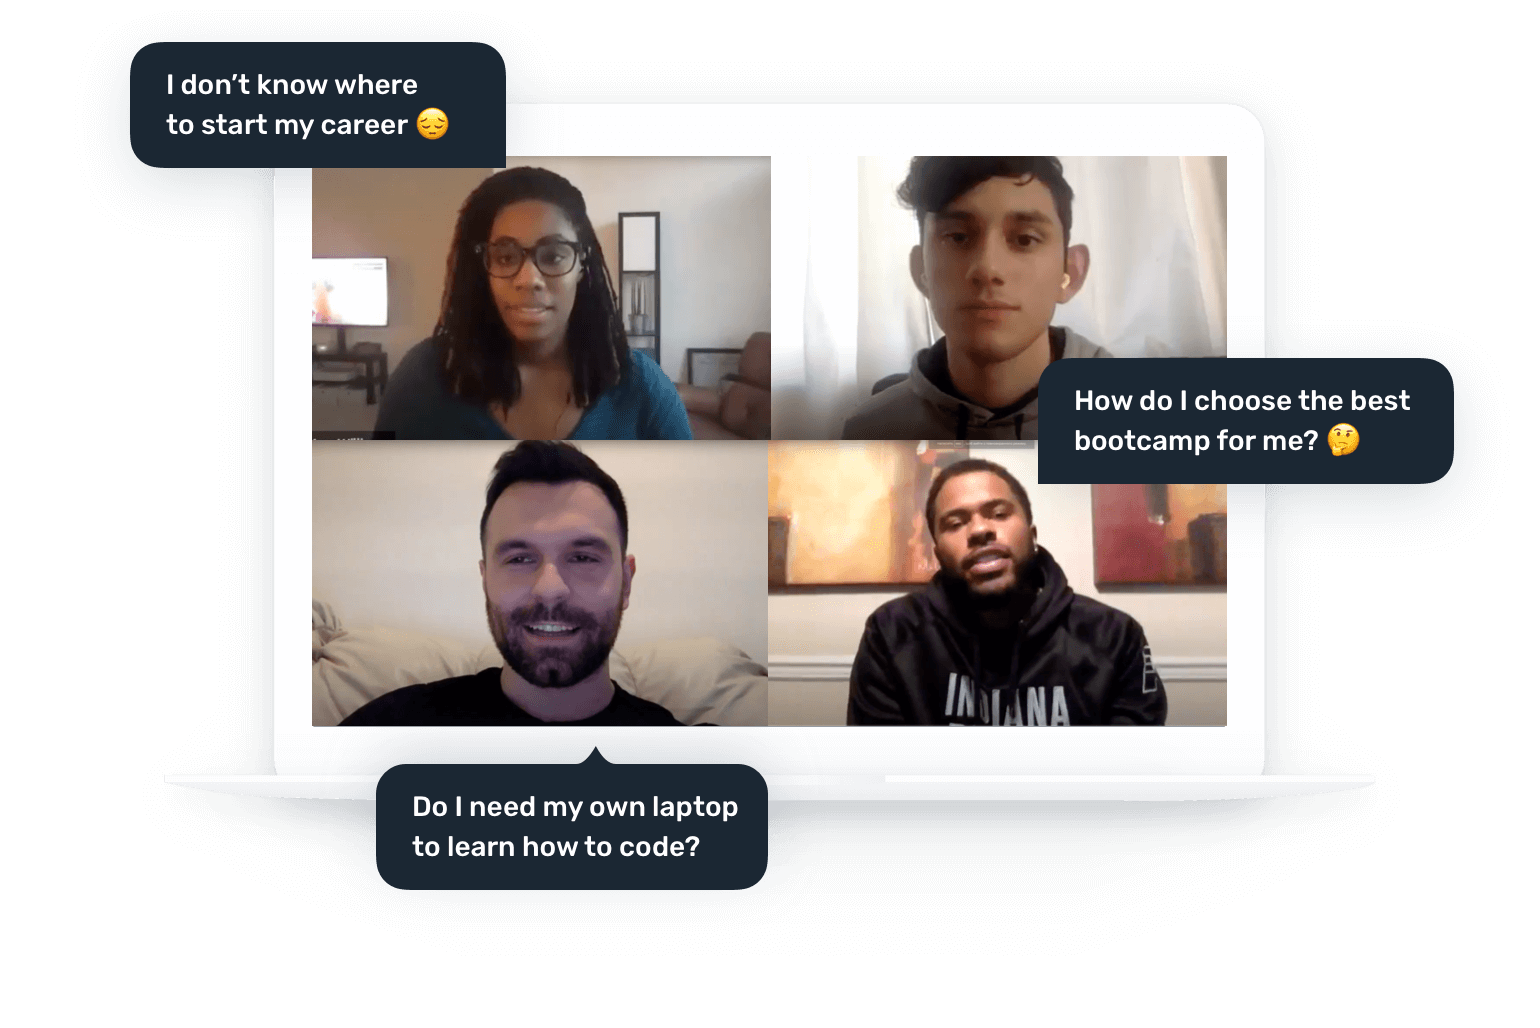 Video call with four Career Karma users talking about starting careers, choosing bootcamps, and laptops.